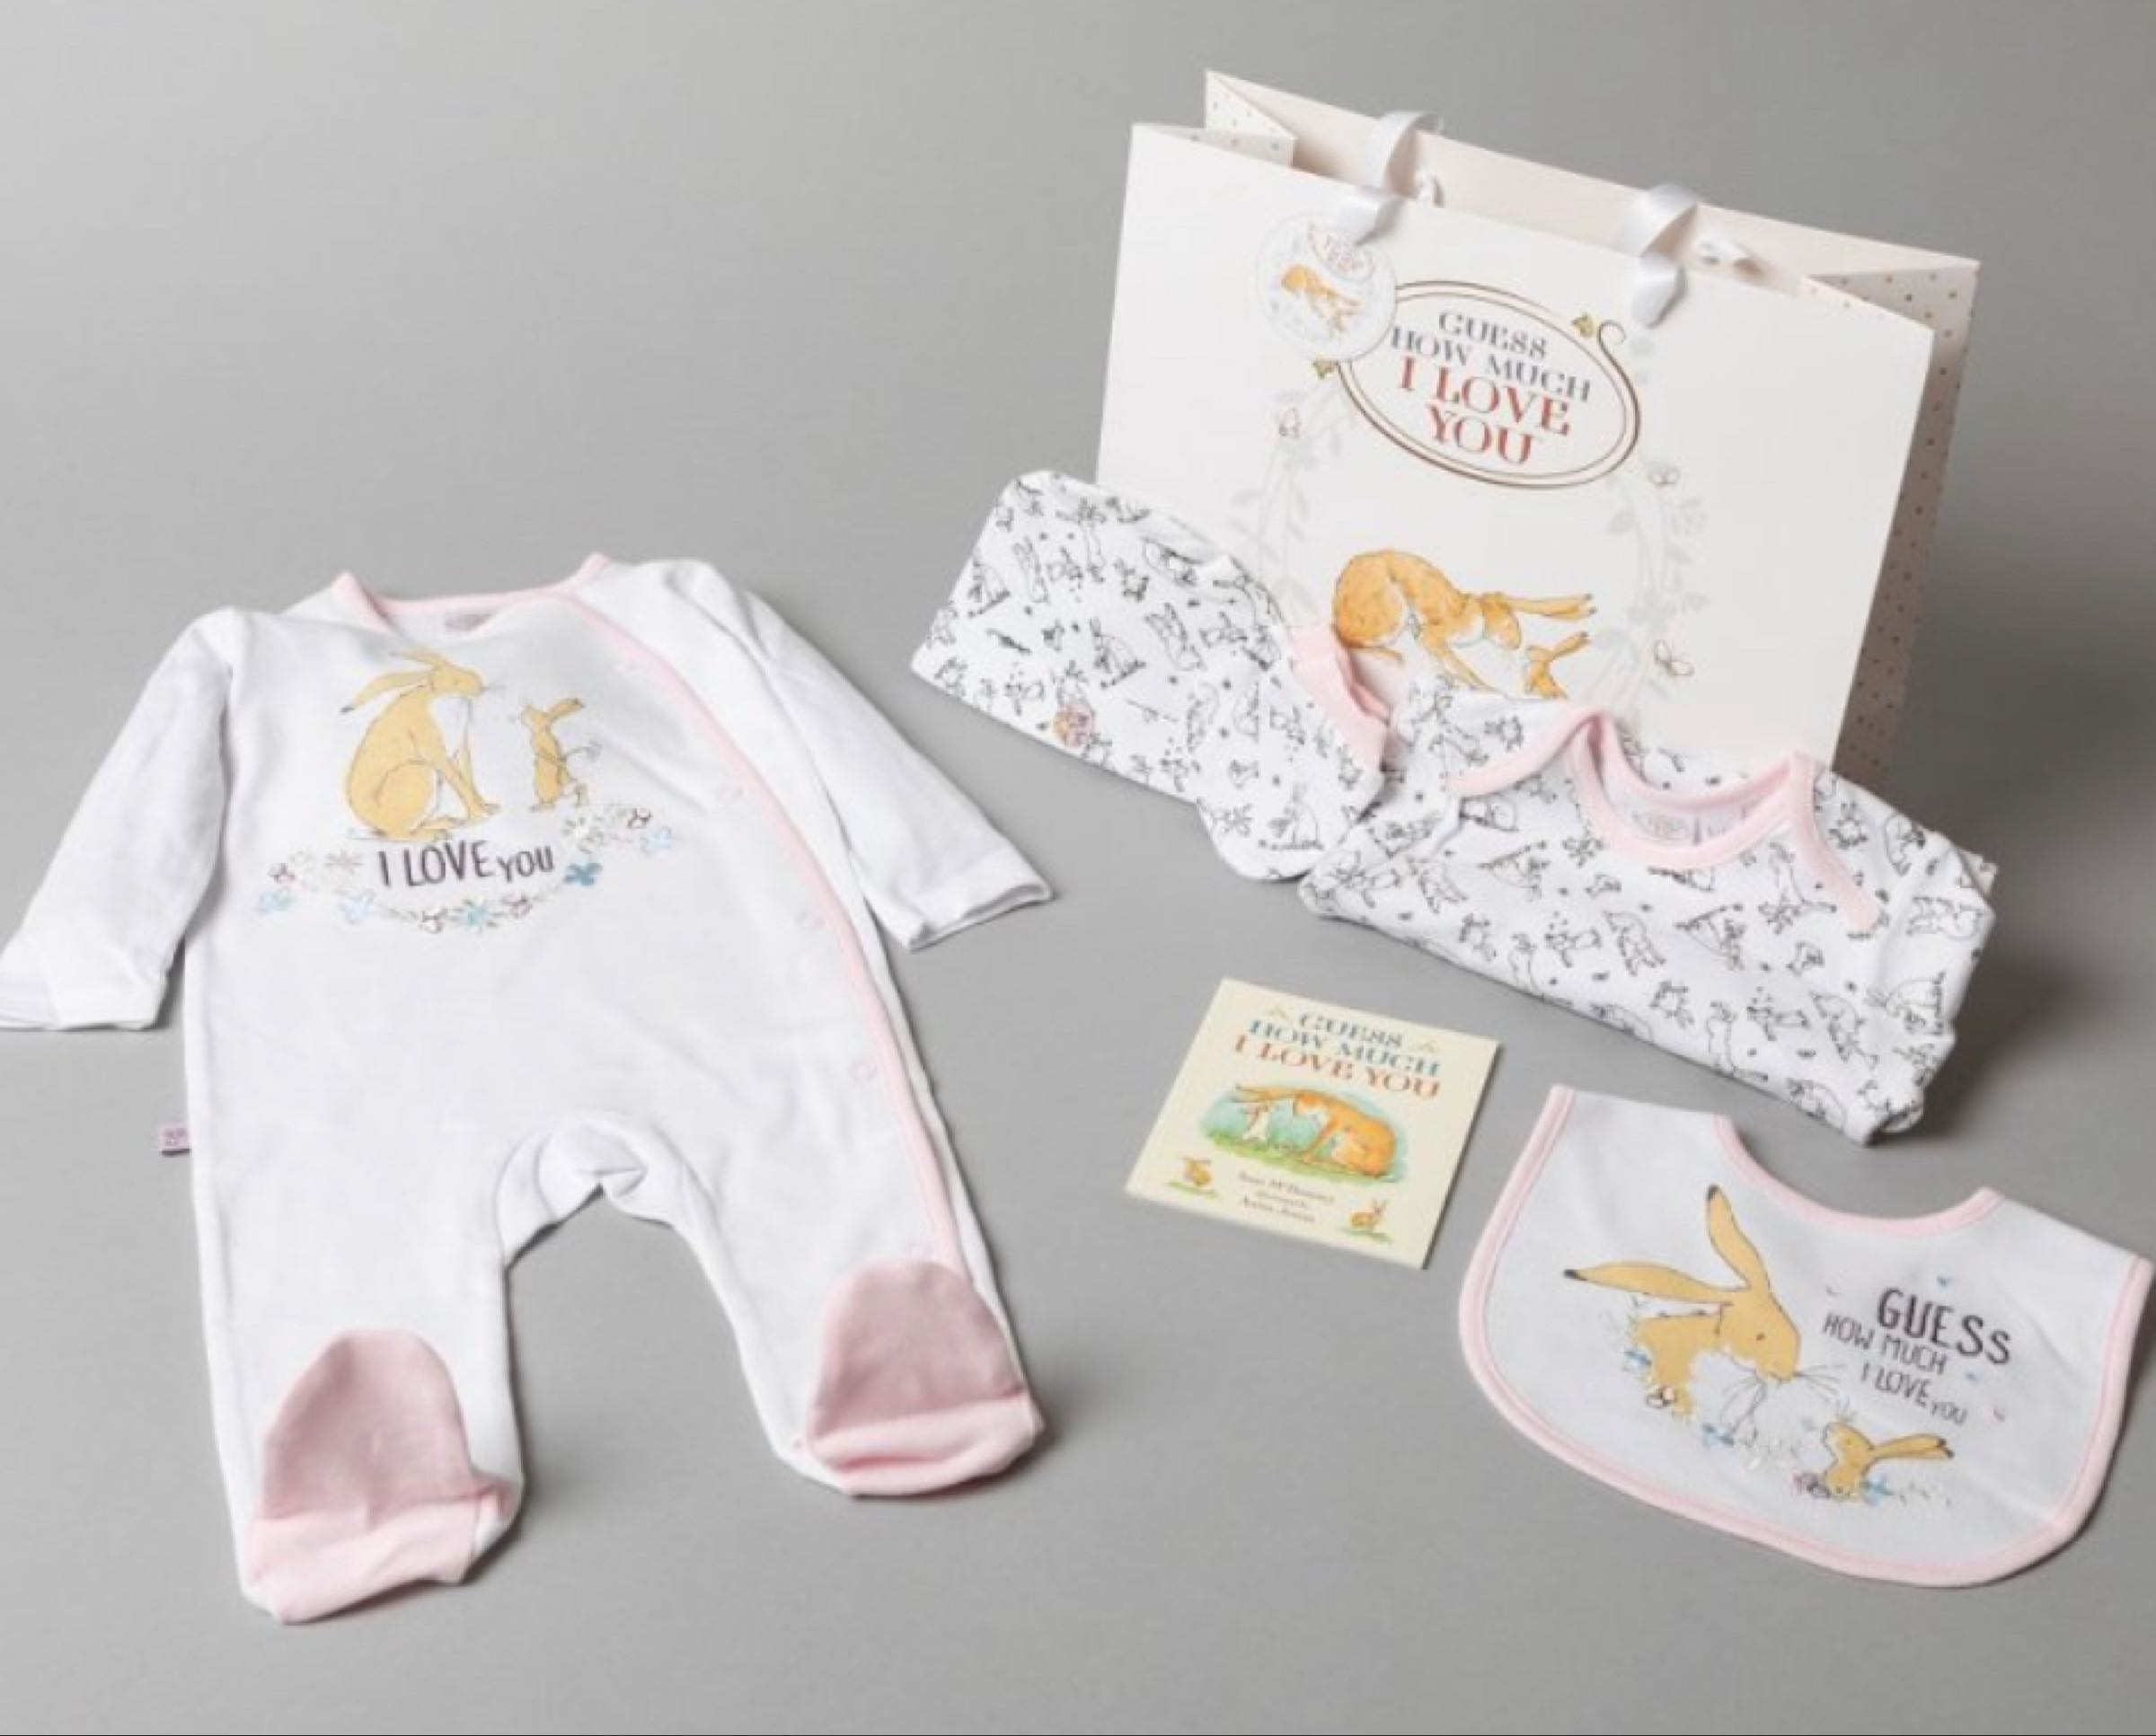 Guess How Much I Love You Layette Gift Bag Set   - sleepsuit, bodysuit, mitts, bib, hat, book and gift bag -  Pink